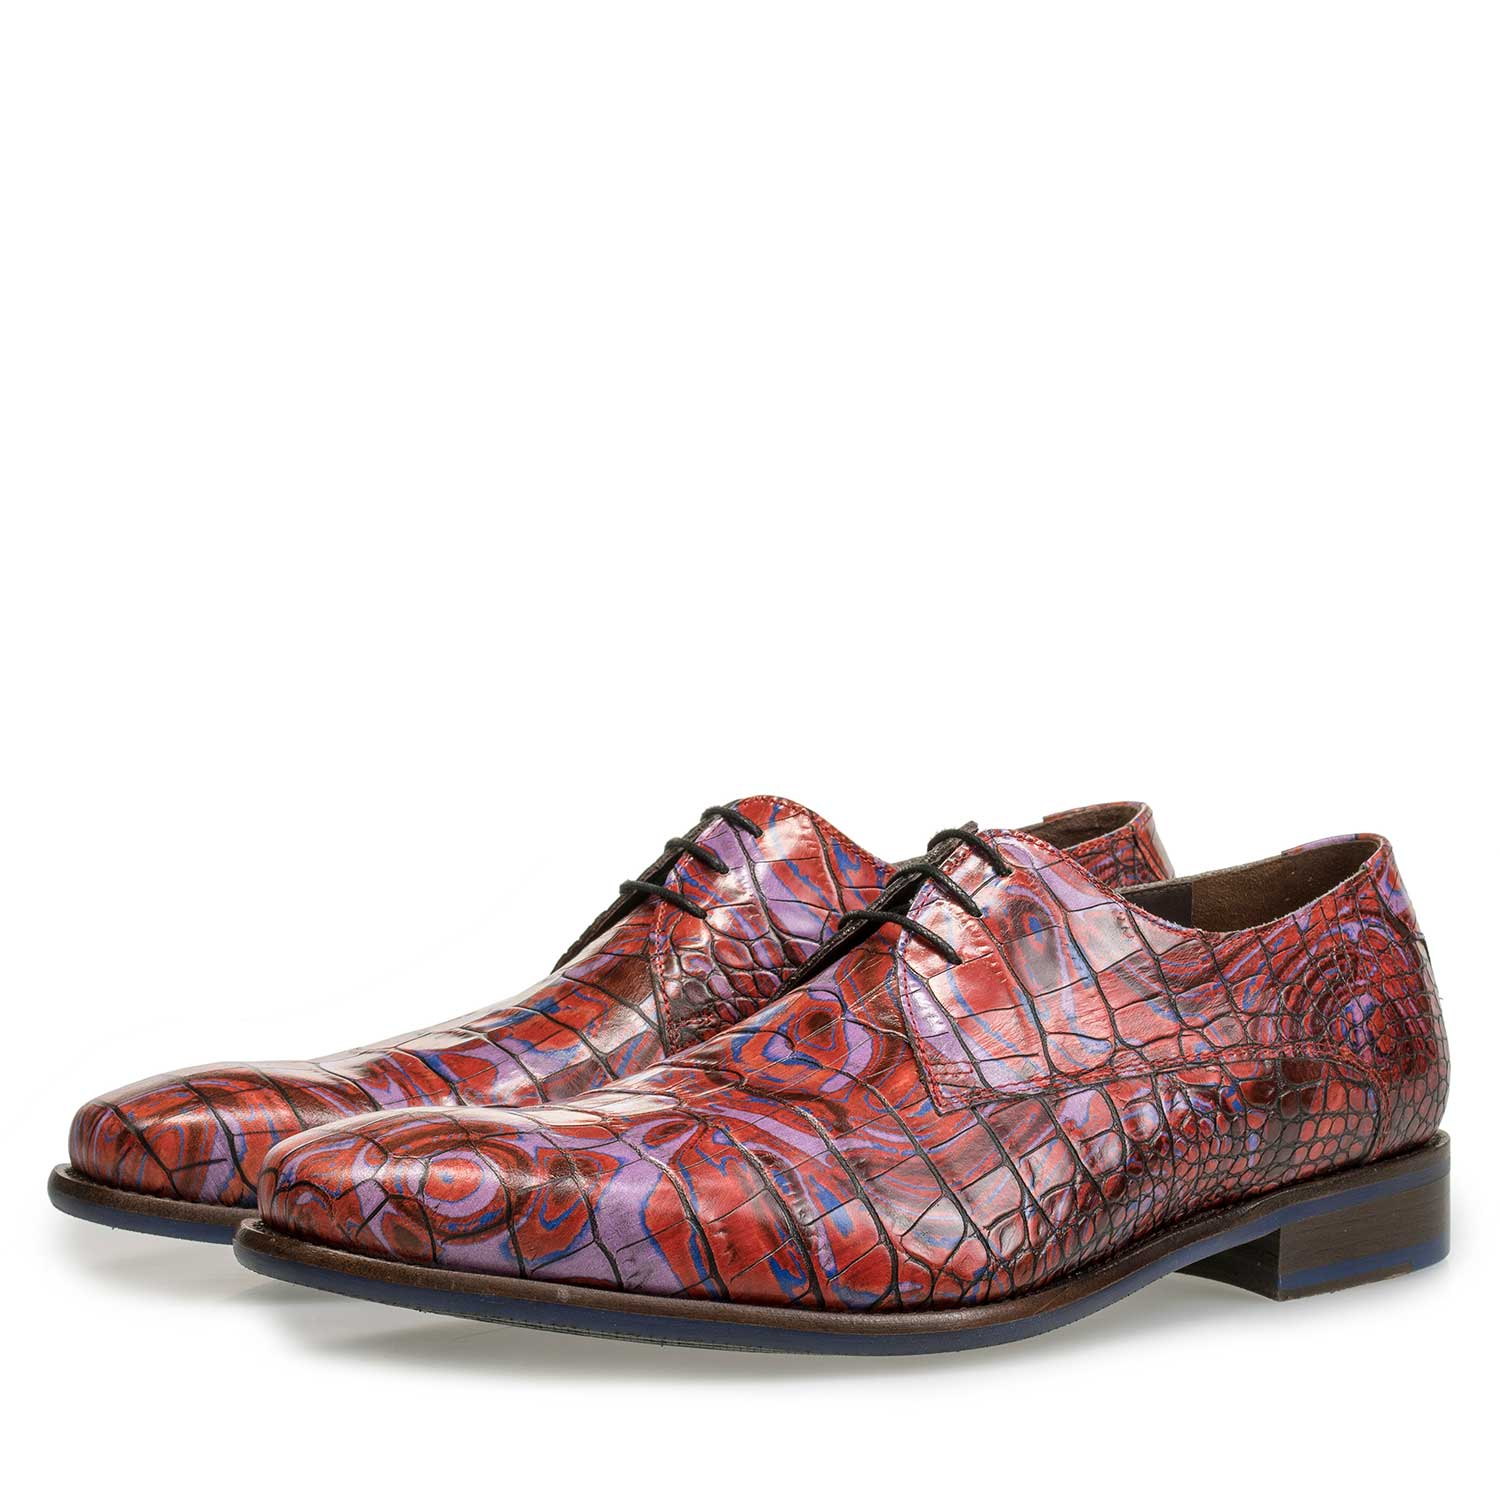 14267/05 - Red Premium croco print lace shoe